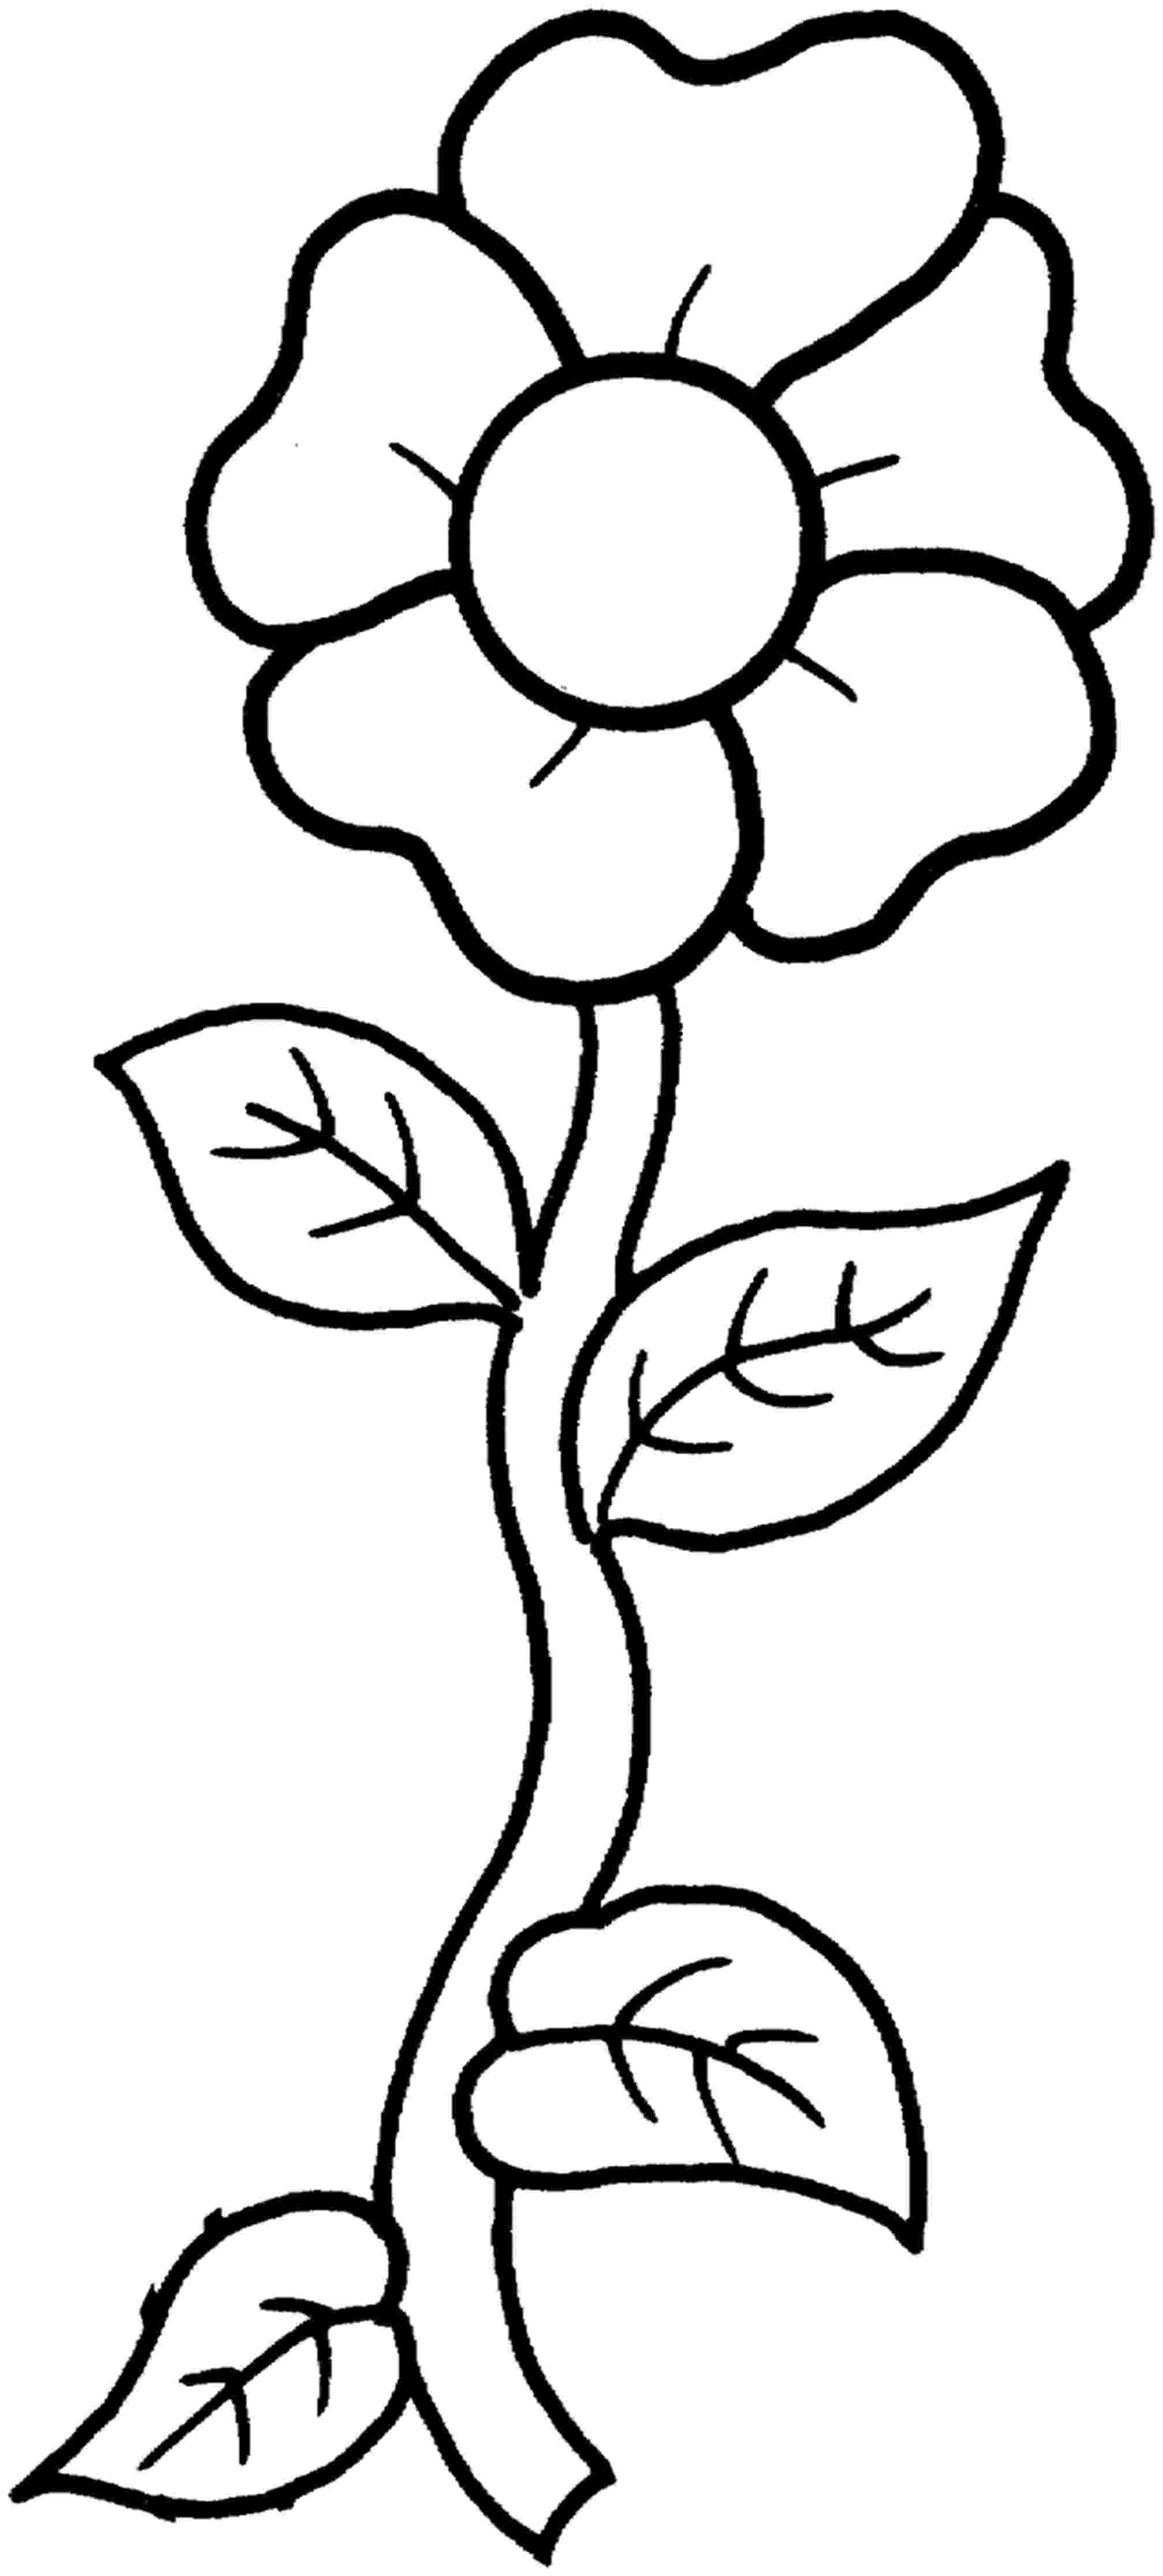 color page flower free printable flower coloring pages for kids best page color flower 1 1